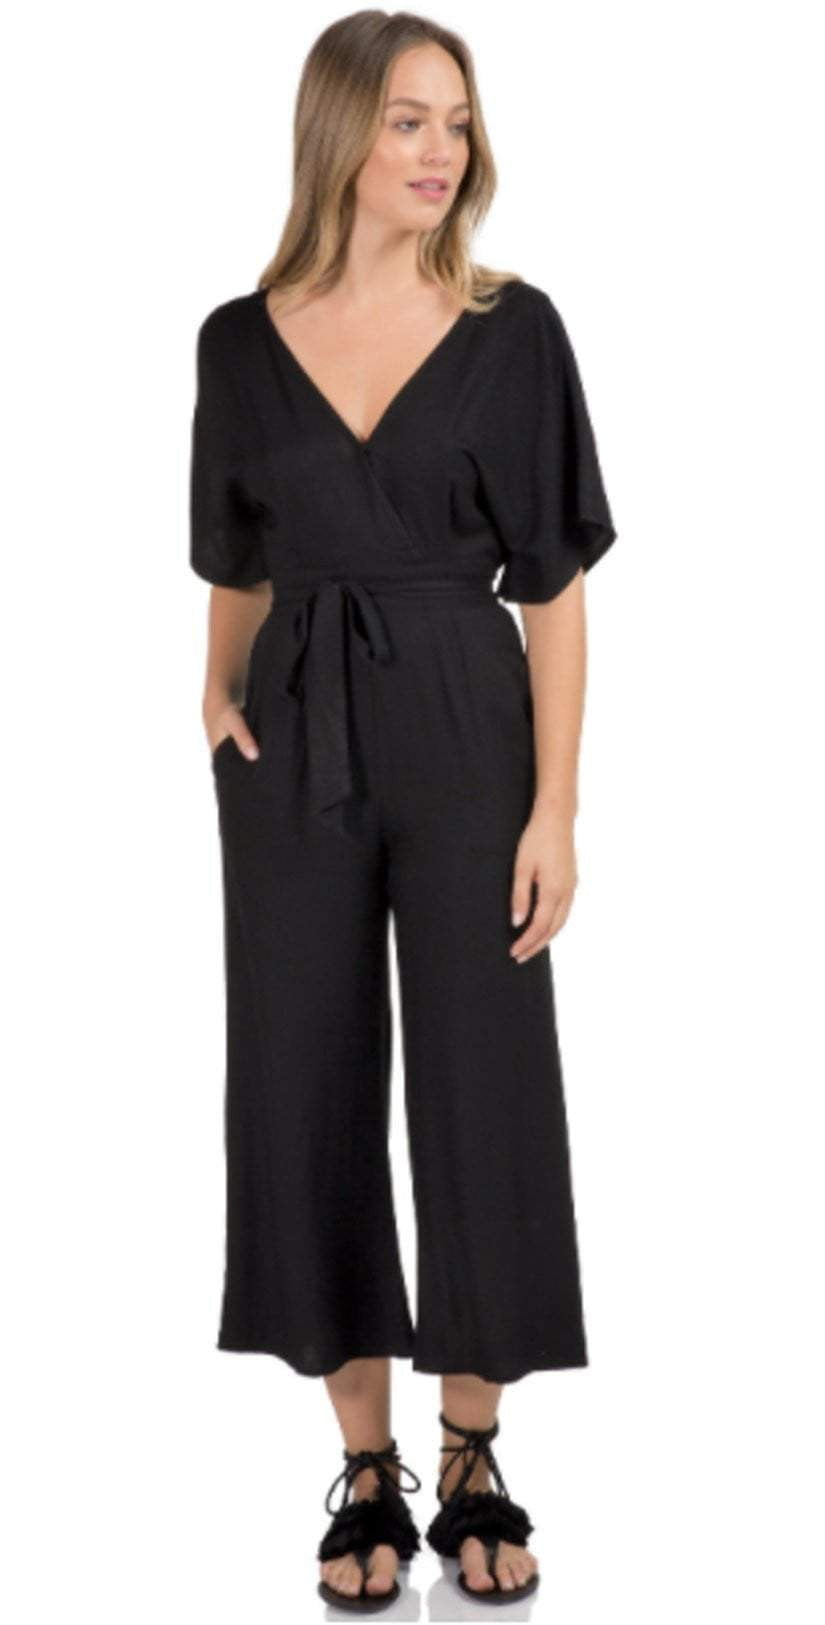 Elan Romper Ruffle Top Jumpsuit in Black SC7142-BLK: